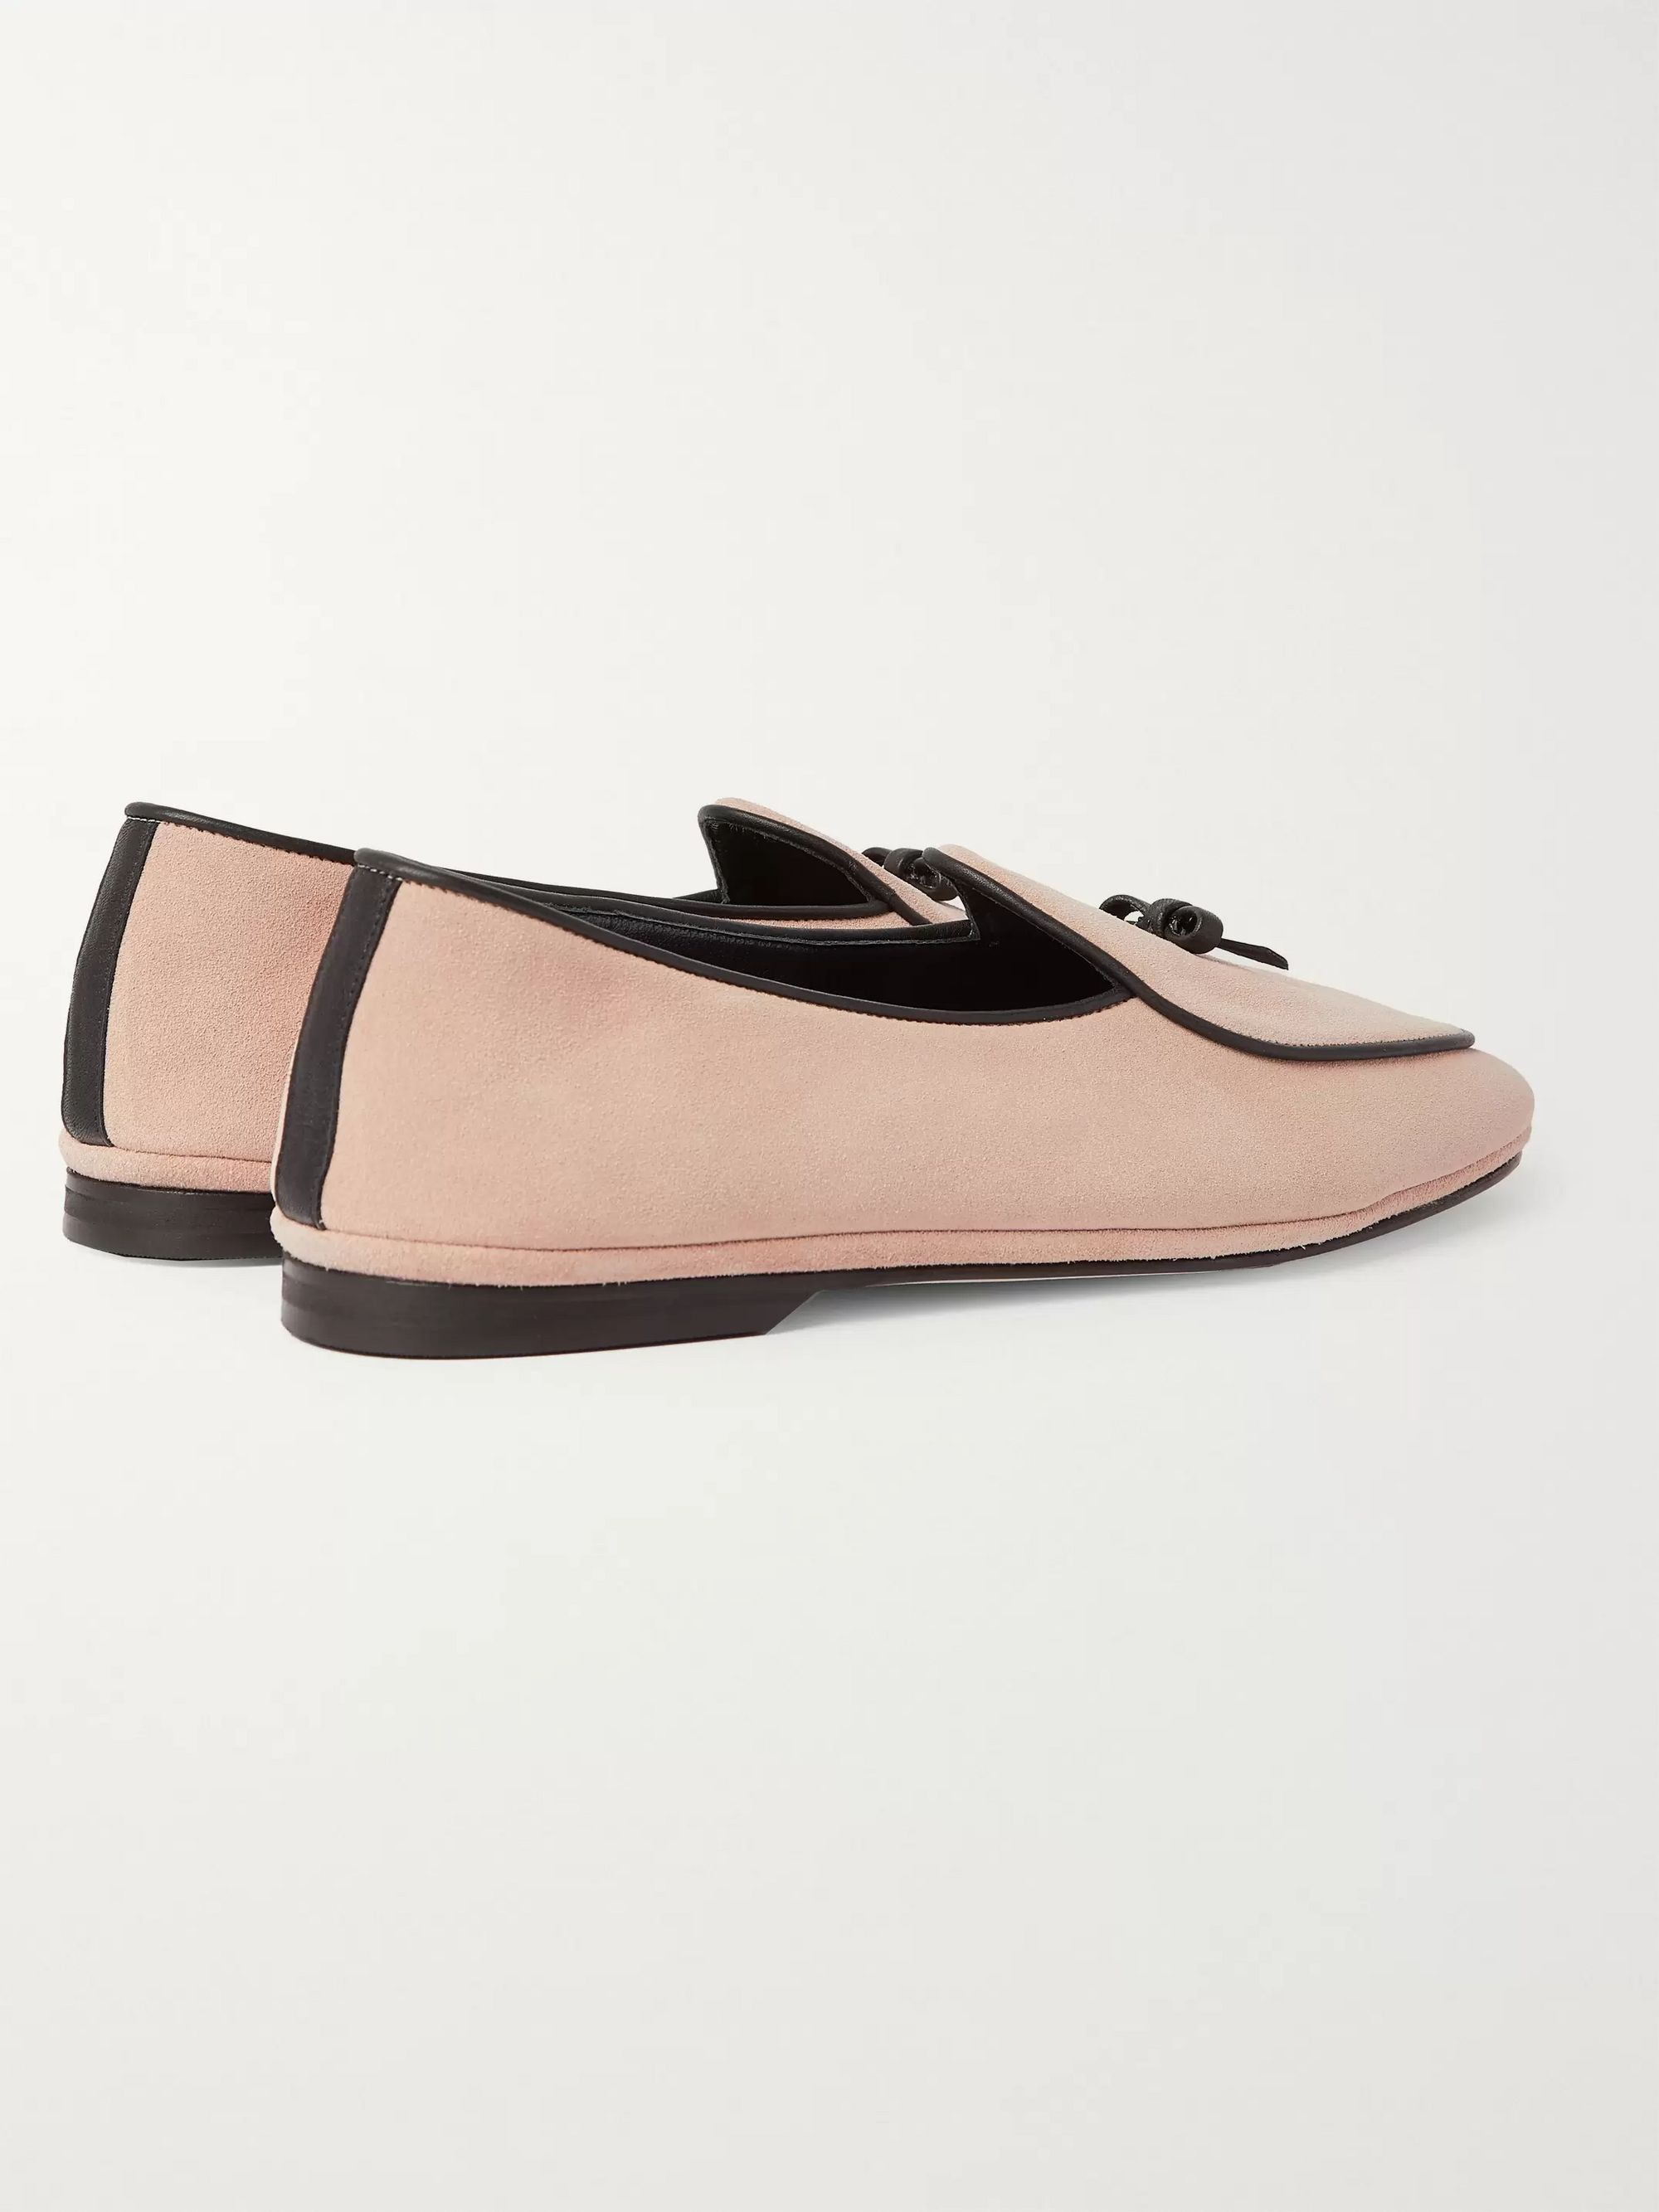 Beige Marfy Embellished Leather-trimmed Suede Loafers | Rubinacci